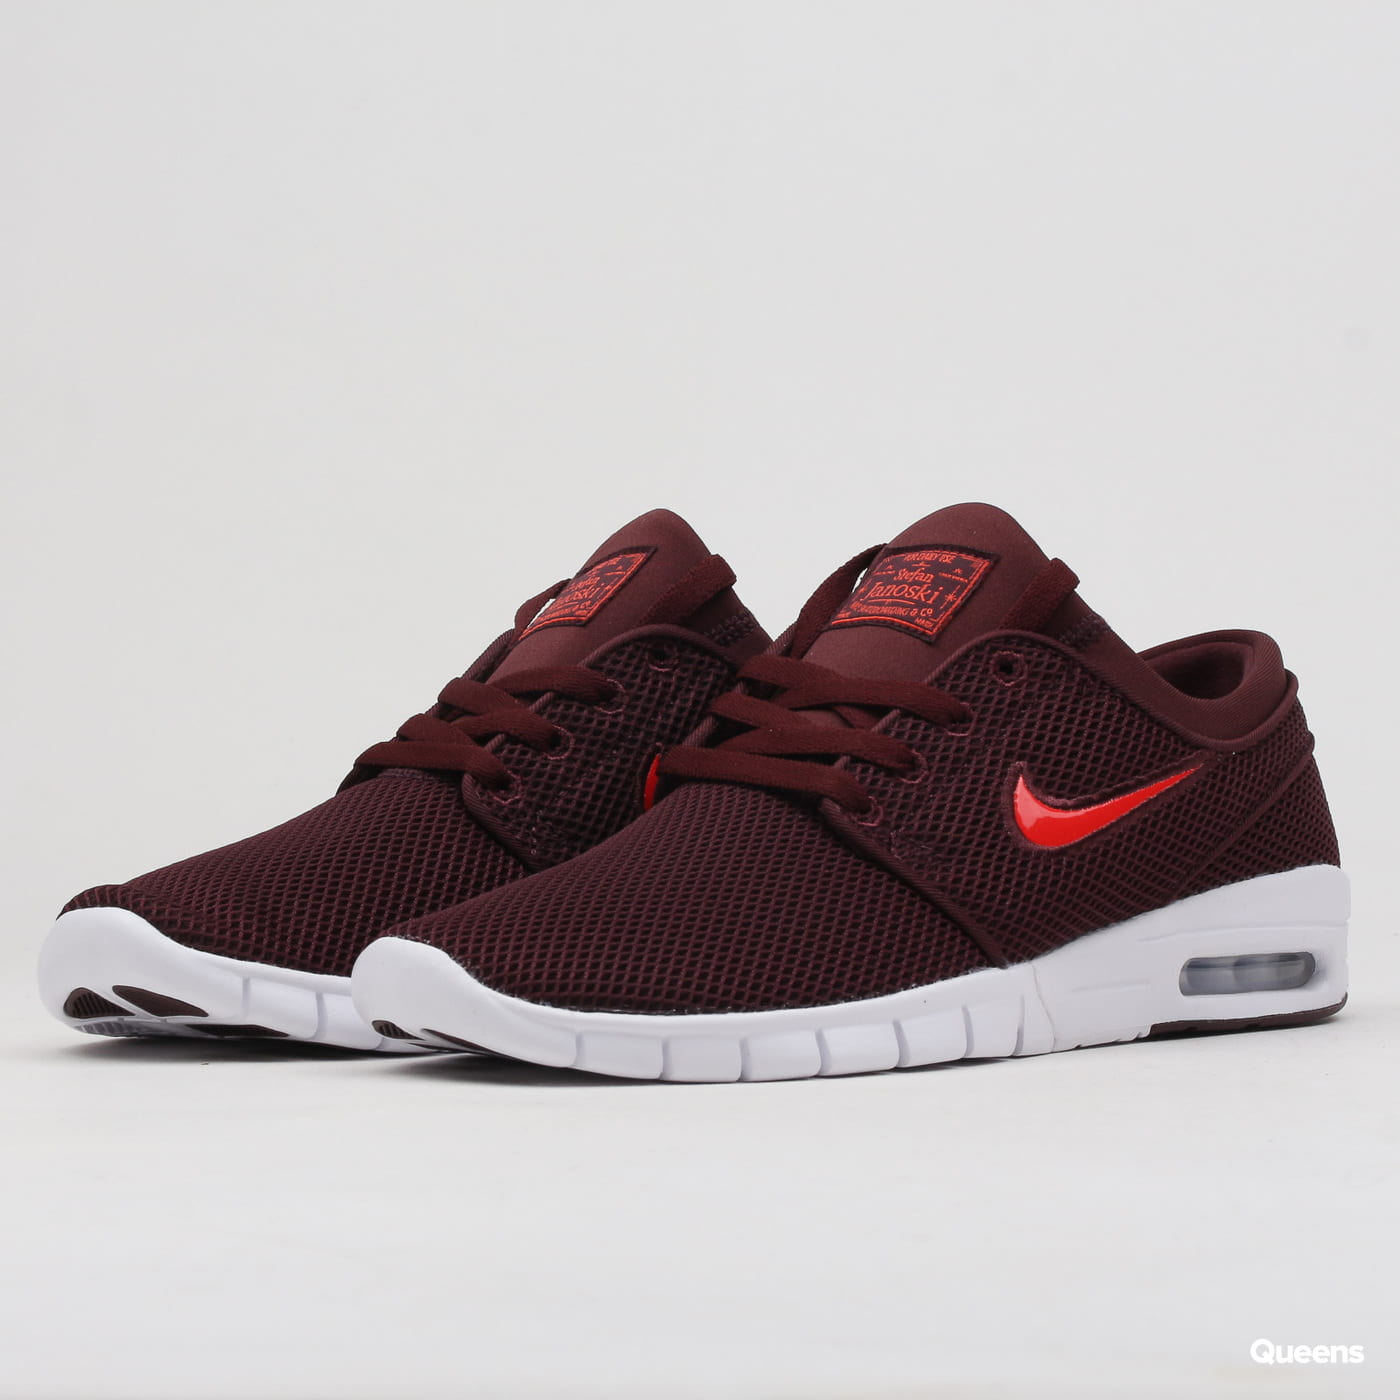 quality design ef1e7 7e635 Sneakers Nike Stefan Janoski Max burgundy crush / habanero red (631303-604)  – Queens 💚